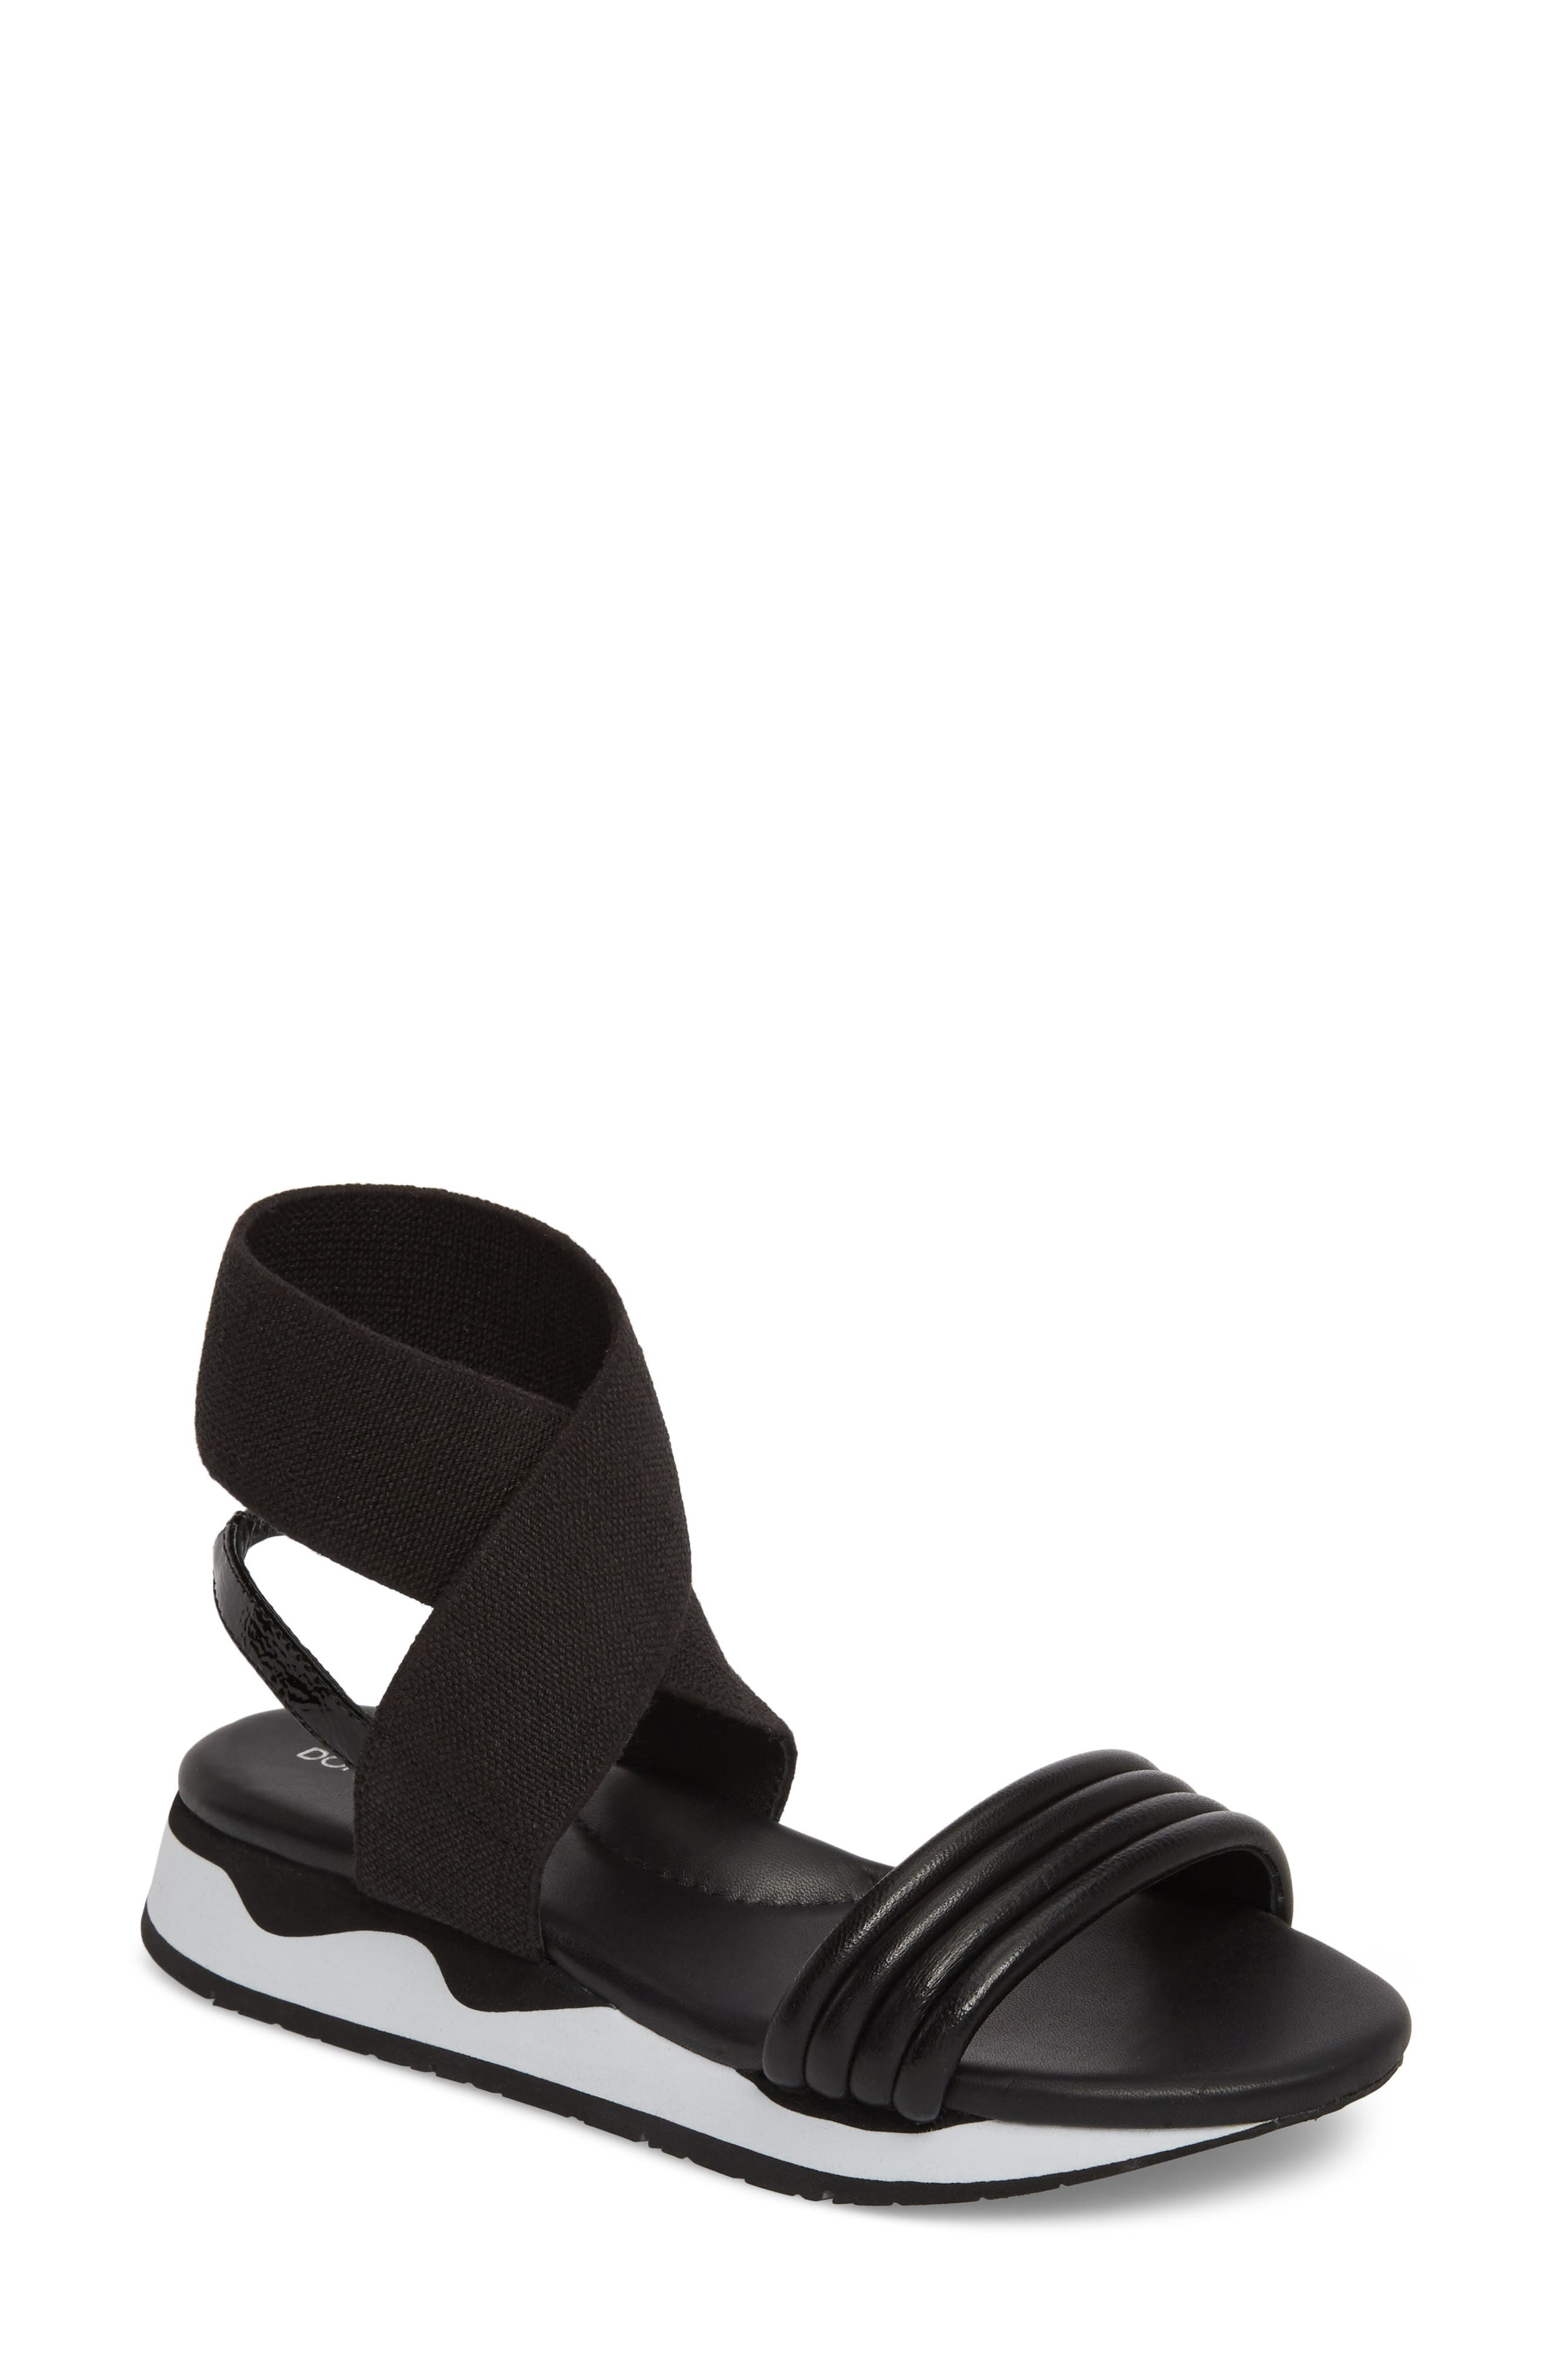 Shaye Ankle Strap Sandal,                             Main thumbnail 1, color,                             Black Leather